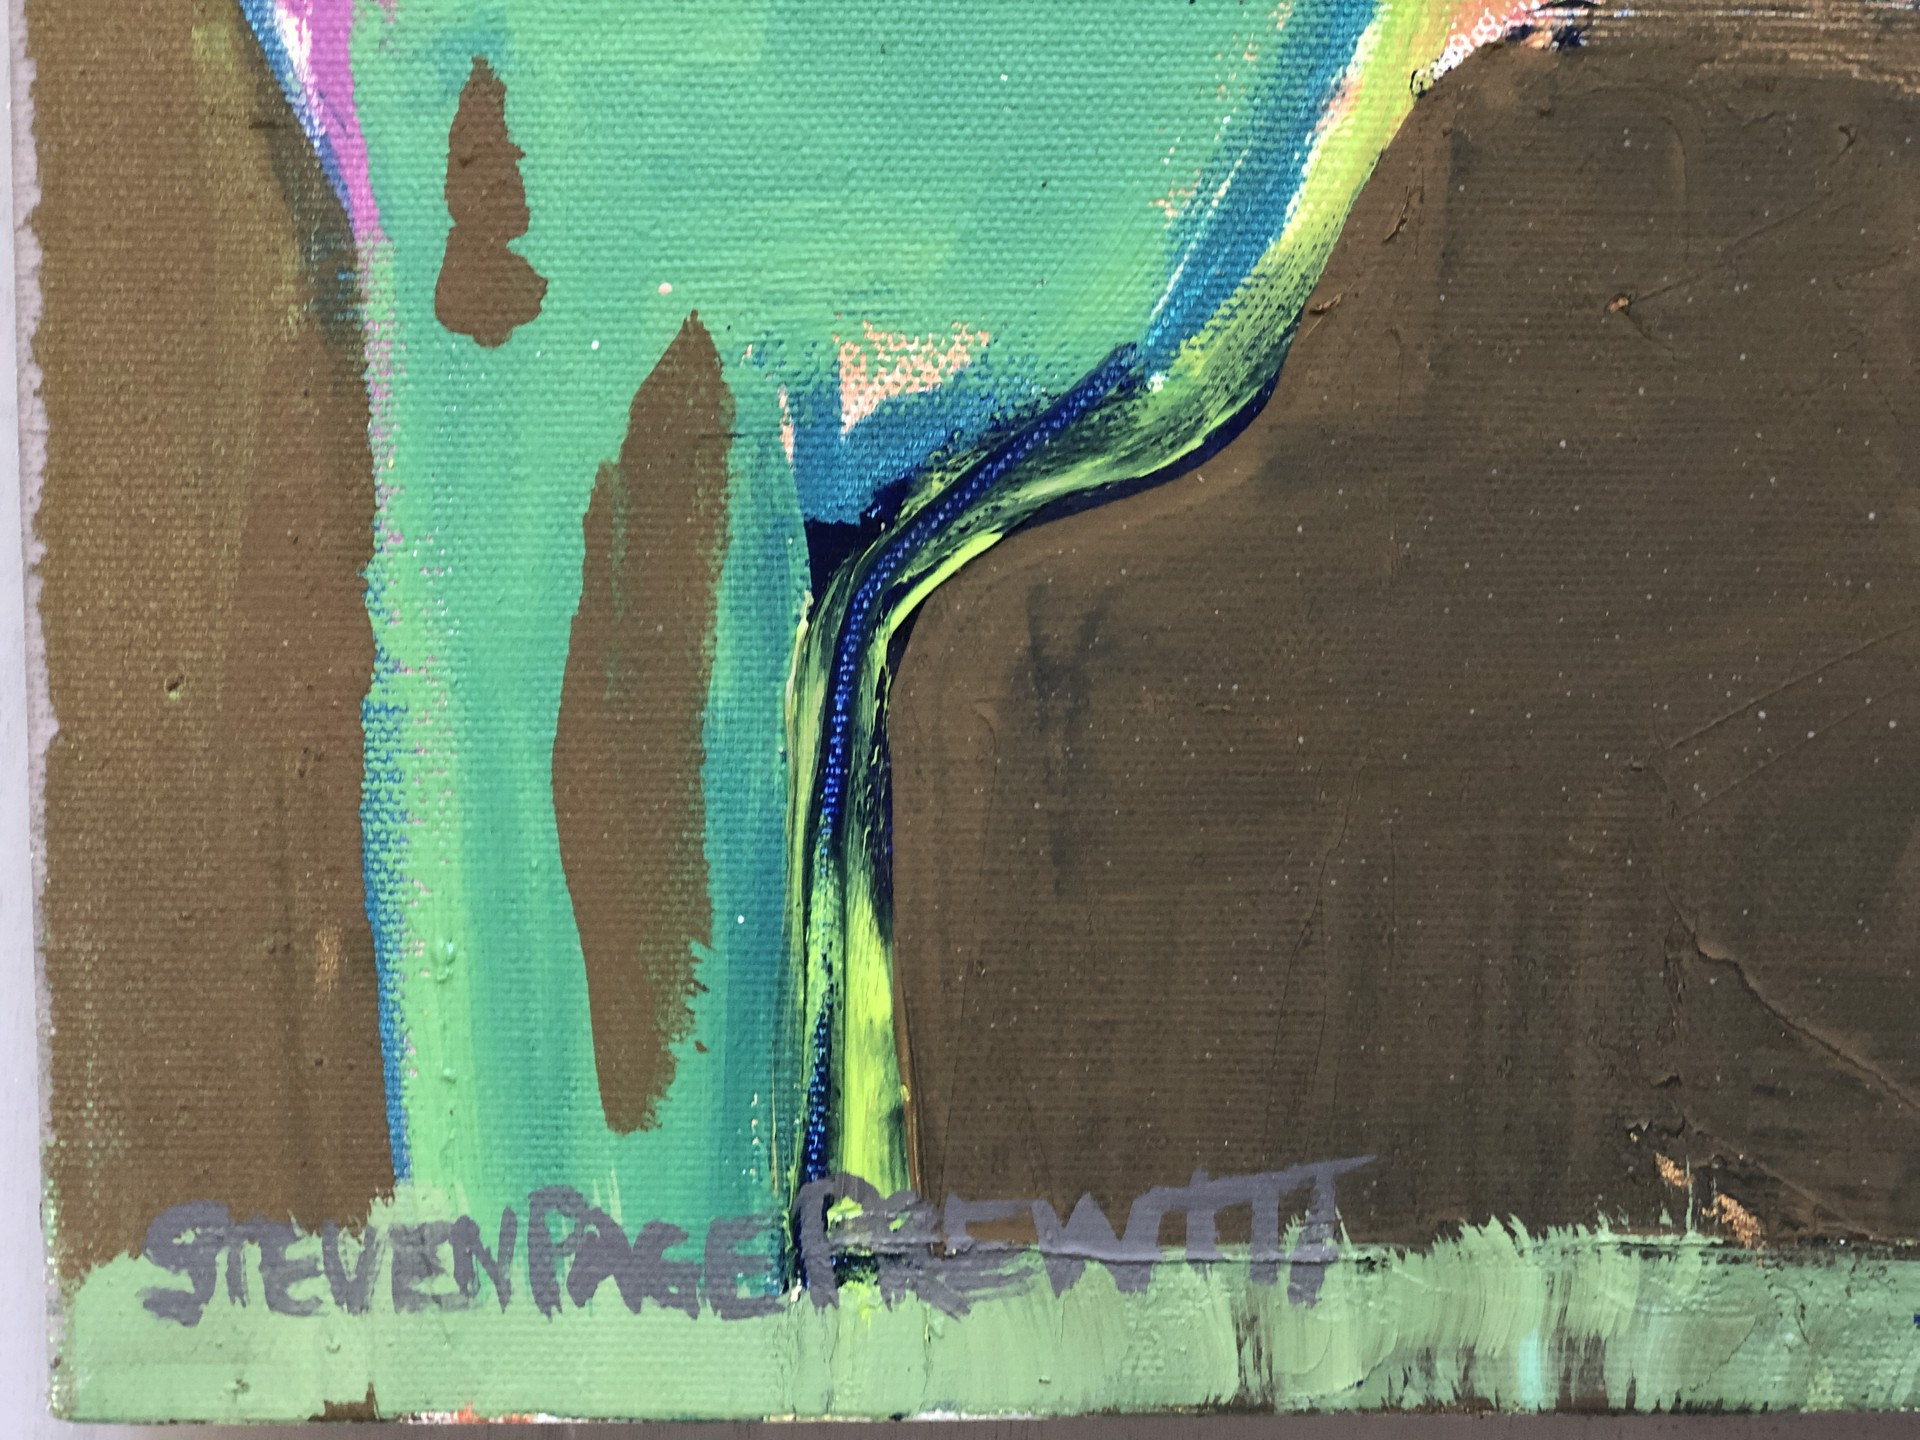 Abstract Landscape 22 - When Watauga Lake Needs More Rain by stevenpage prewitt